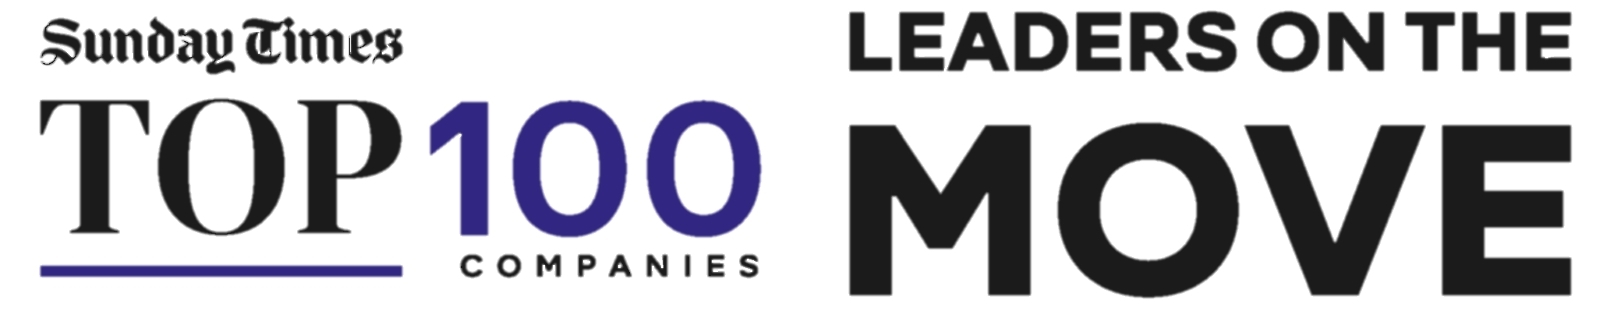 Sunday Times Leaders on the Move Logo